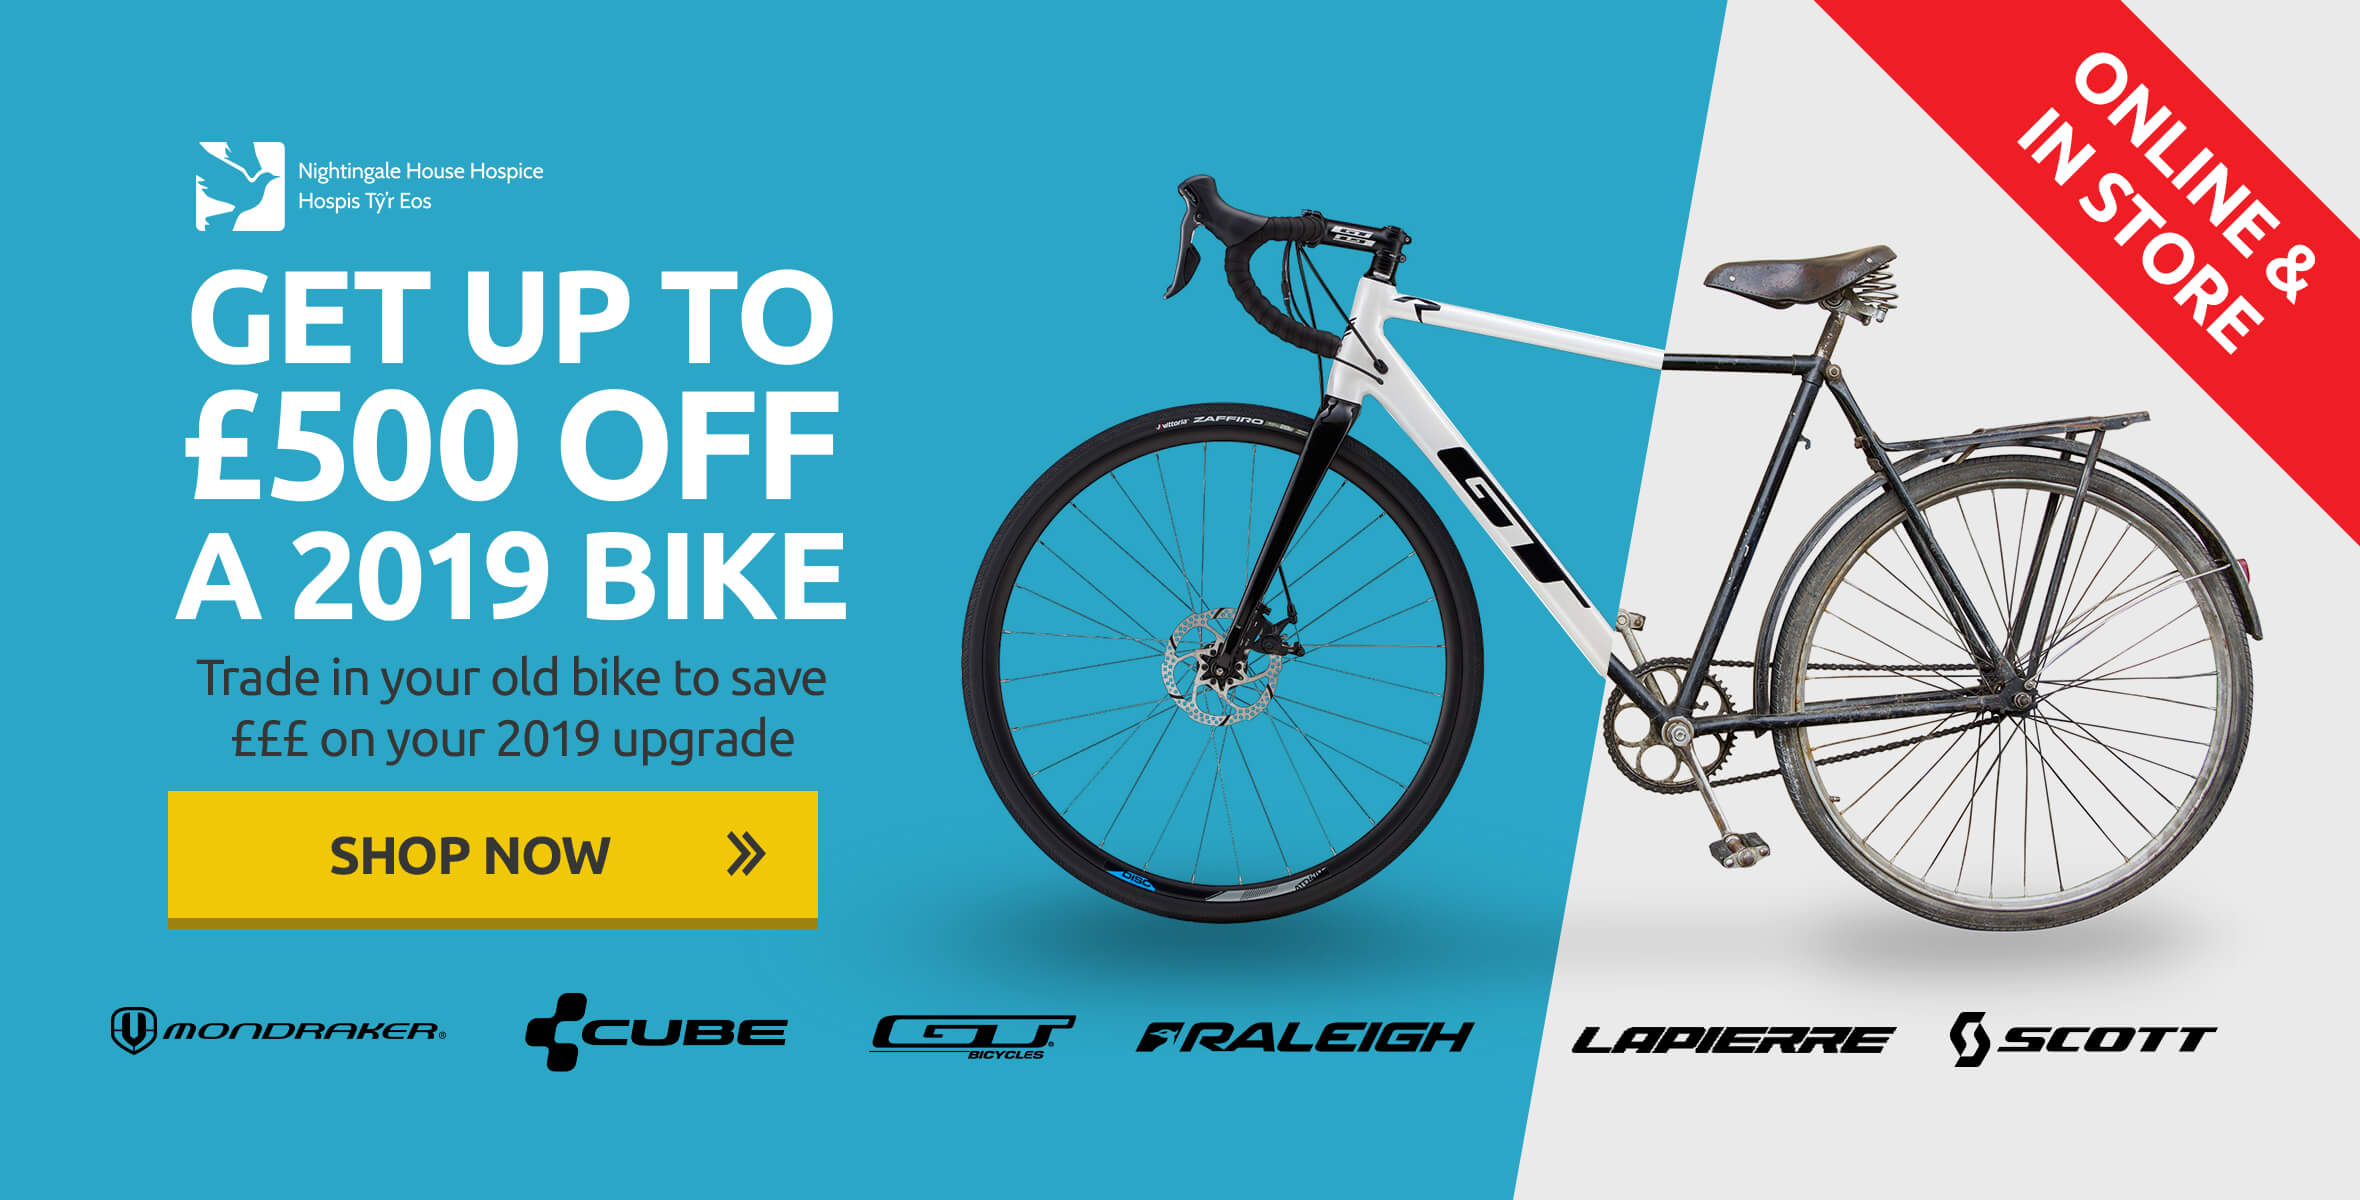 Trade in Your Old Bike to Save £££ on Your 2019 Upgrade